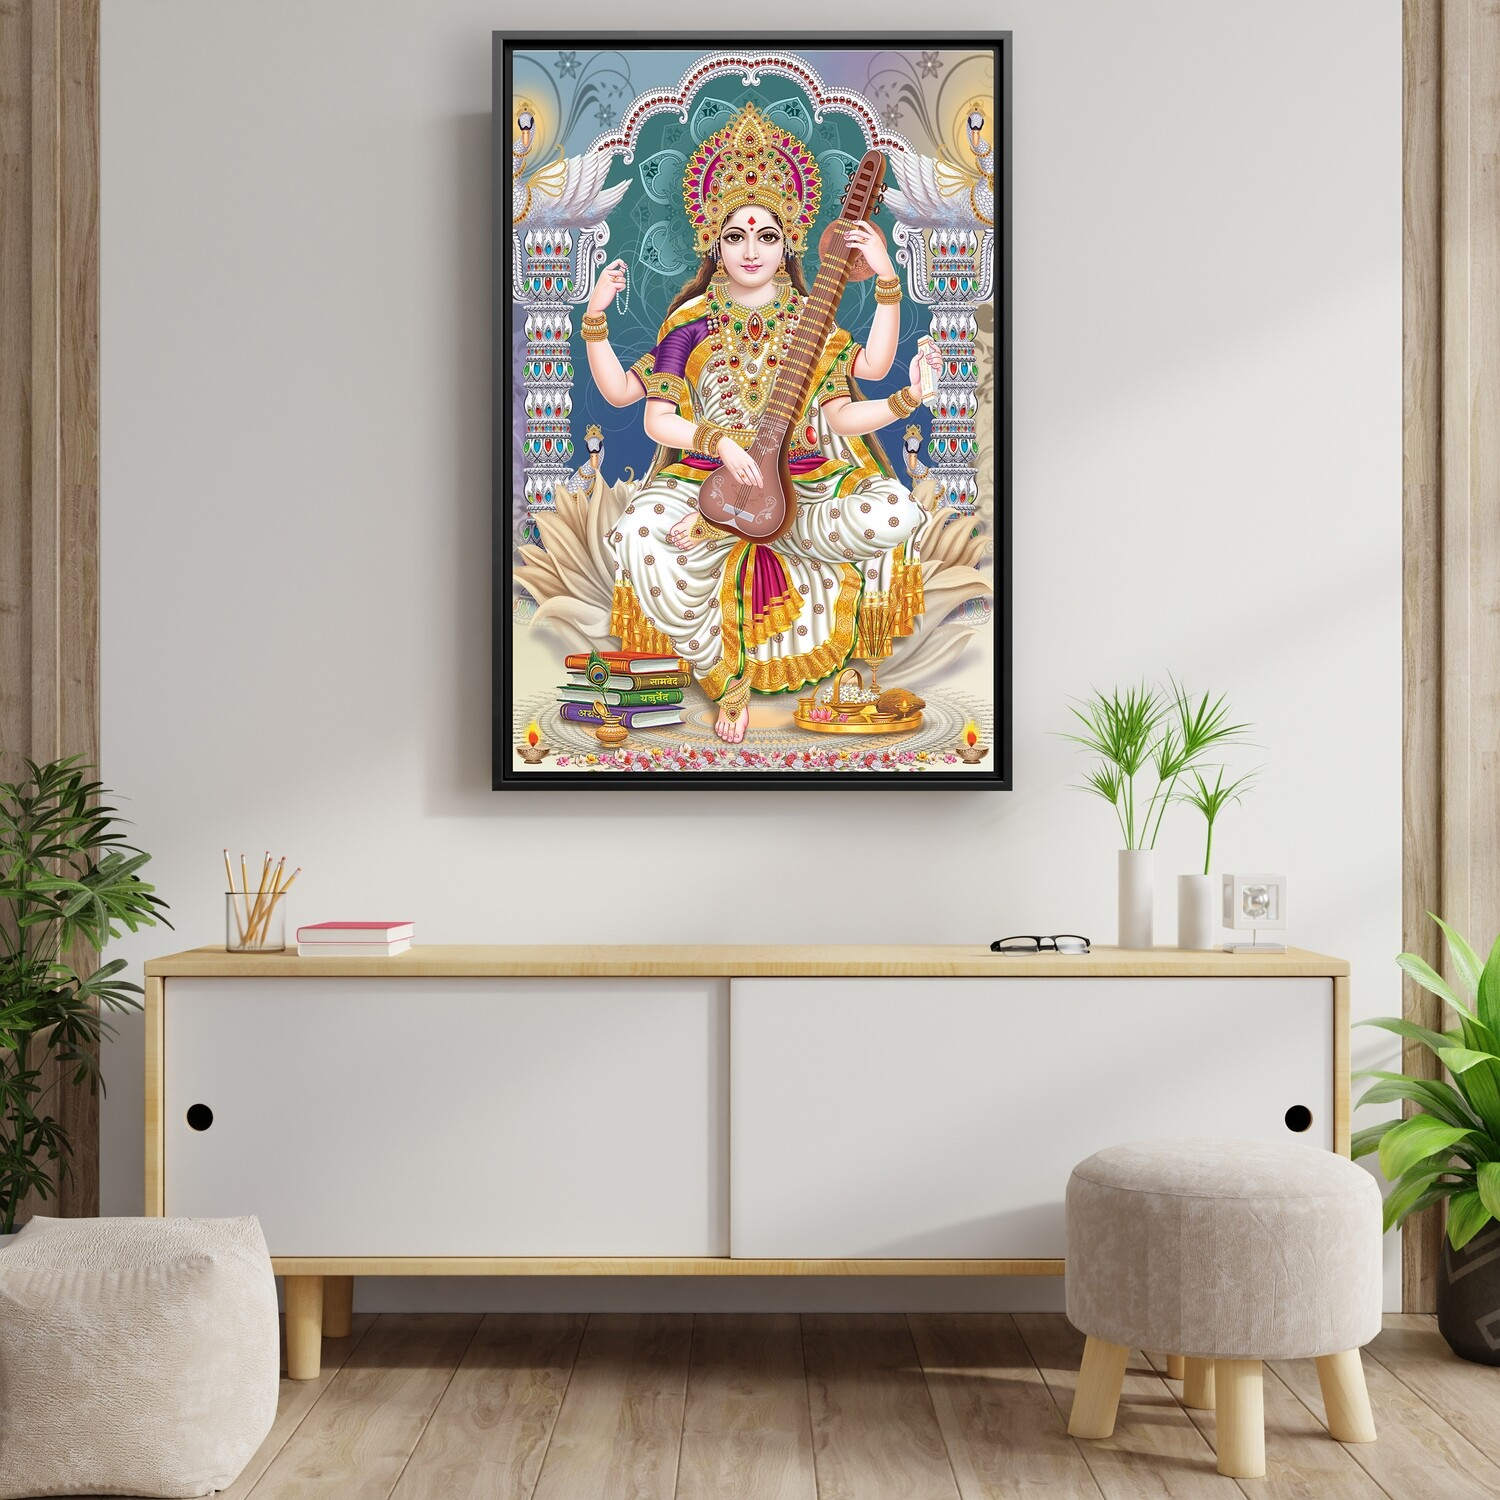 Saraswathy Devi Painting - Framed Hindu God Modern Wall art - Saraswathy Picture Printed on  Acrylic Glass - Framed and Ready To Hang